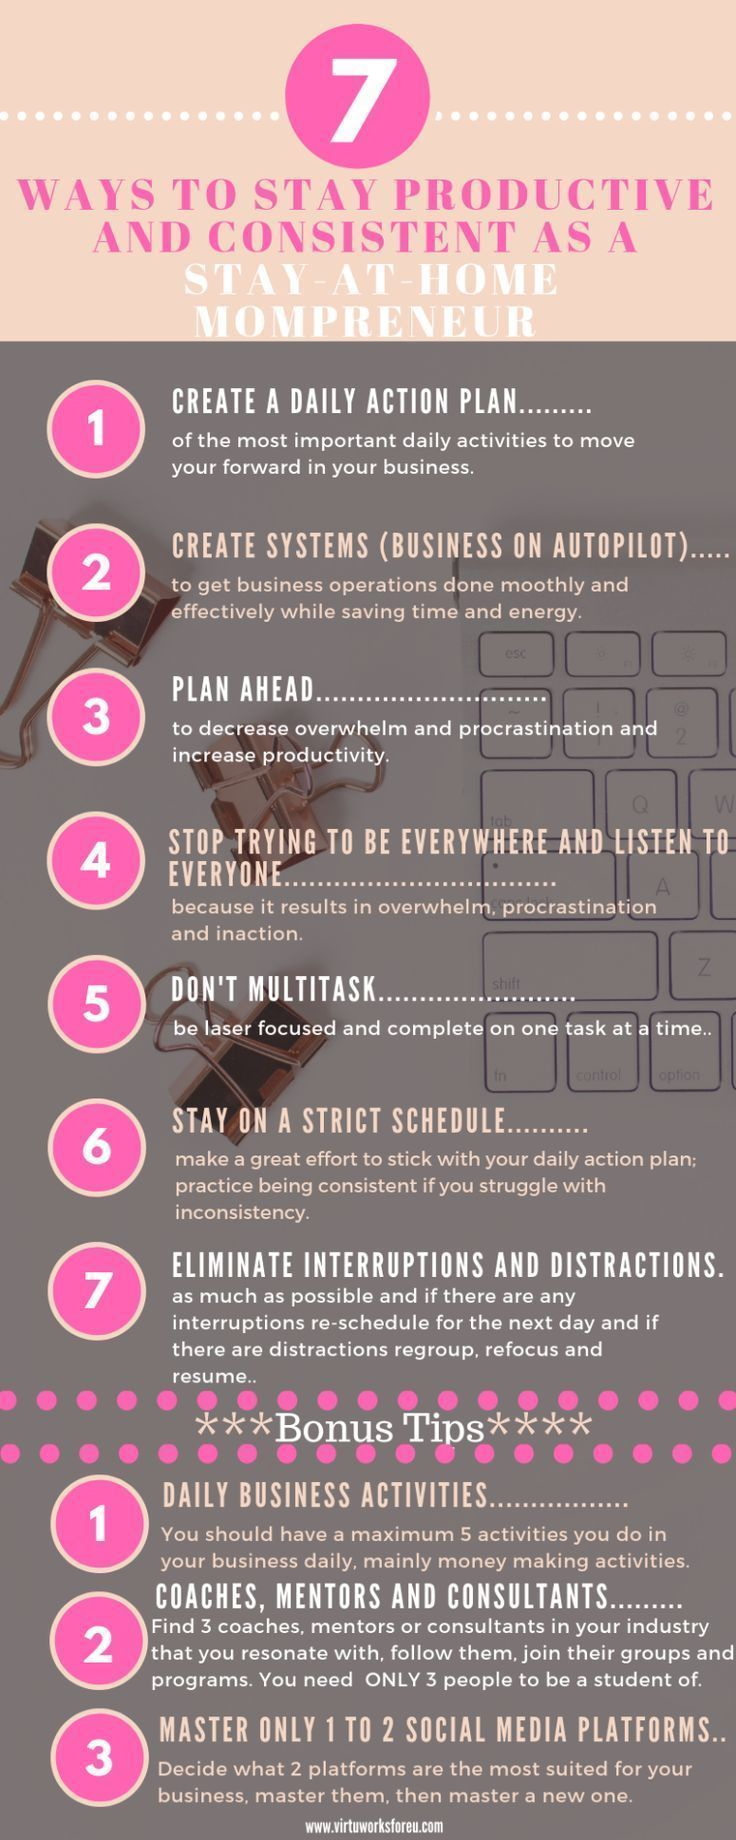 7 Ways To Stay Productive And Consistent As A Stay At Home Mompreneur Virtu Works Fore U Virtual Assistant Services Productivity Money Making Jobs Mompreneur